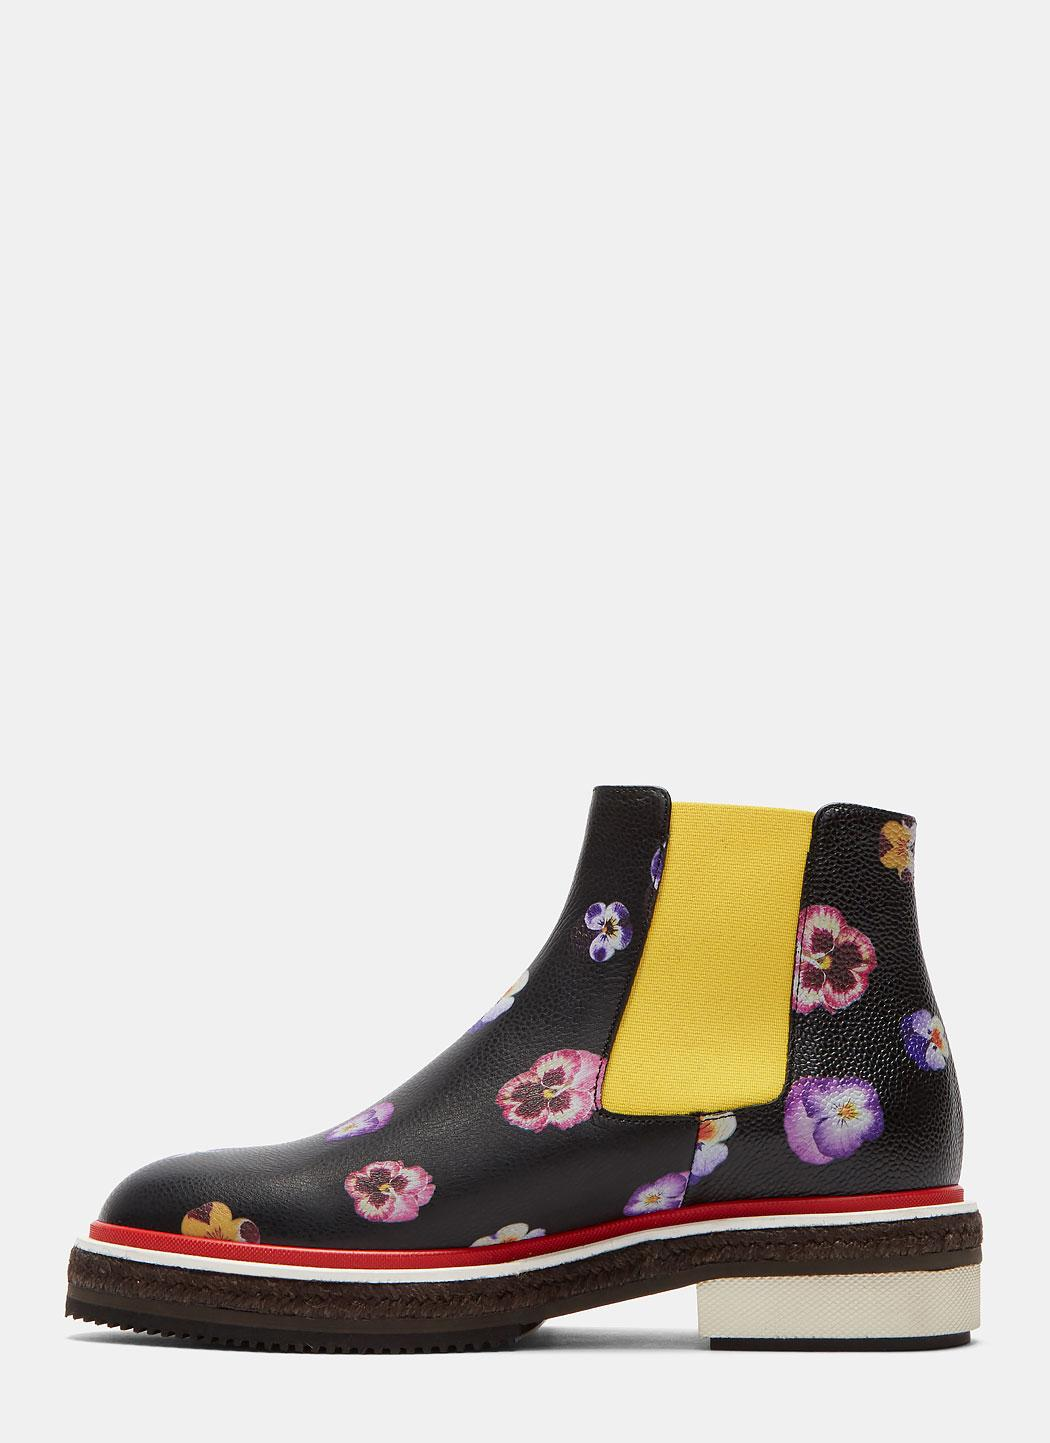 Christopher Kane Leather Women's Pansy Chelsea Boots In Black